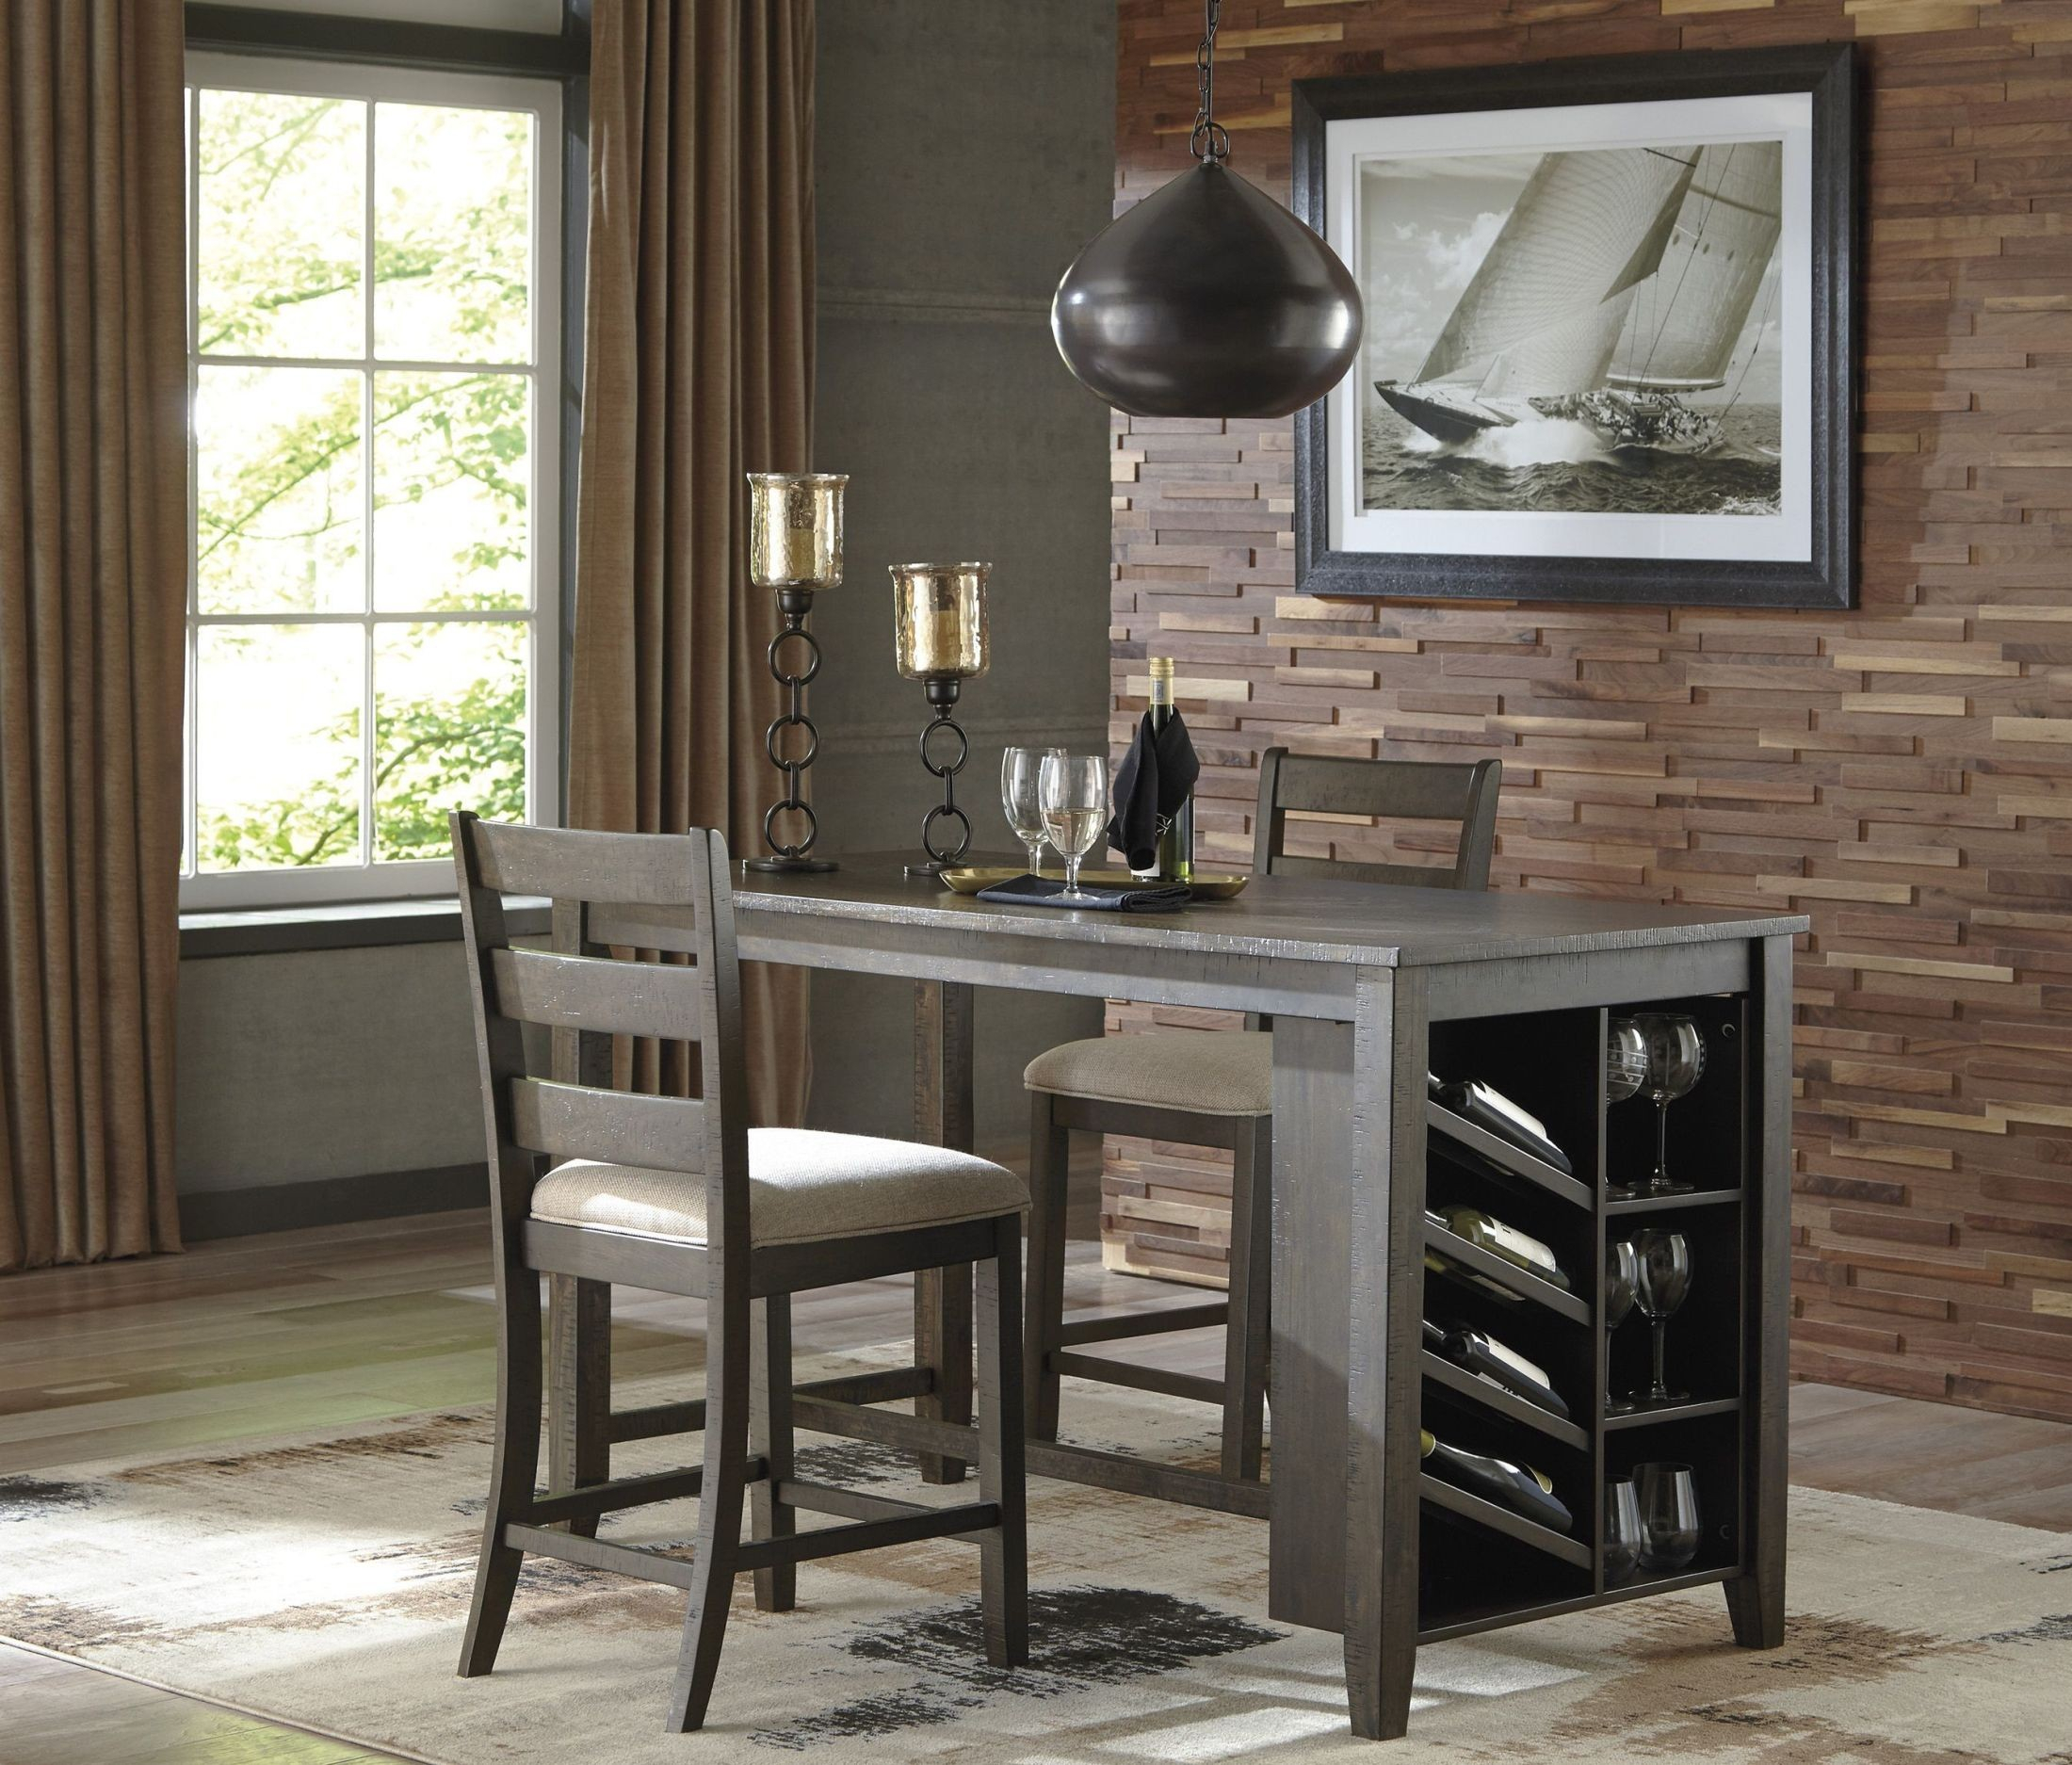 Rokane Light Brown Rectangular Counter Height Dining Table For Latest Dankrad Bar Height Dining Tables (View 15 of 15)